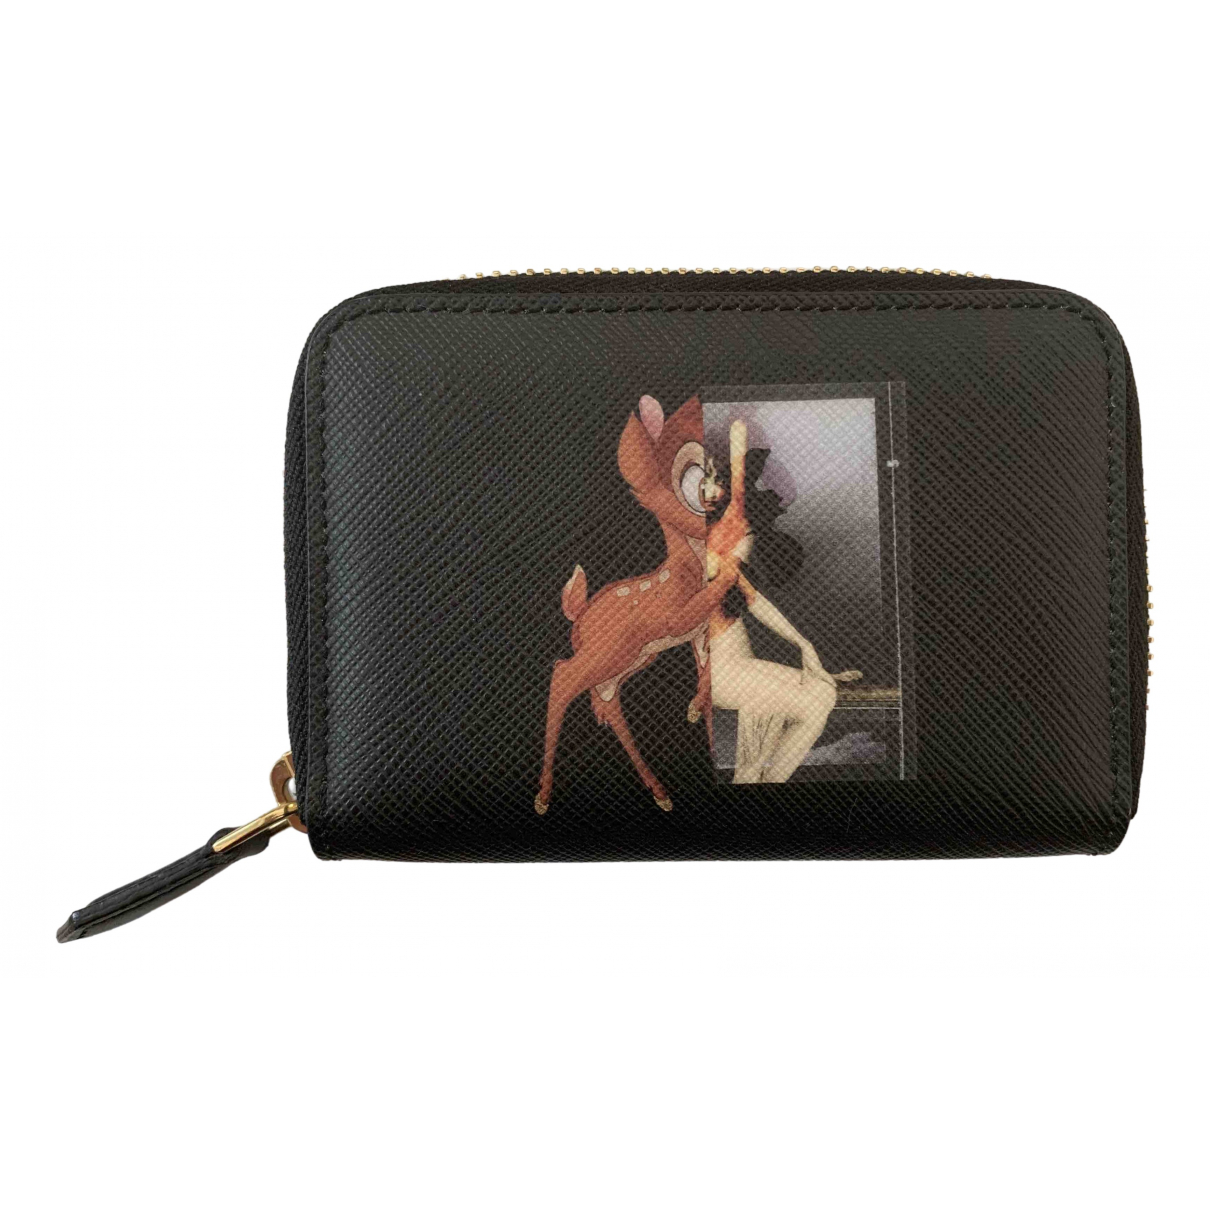 Givenchy \N Black Leather wallet for Women \N